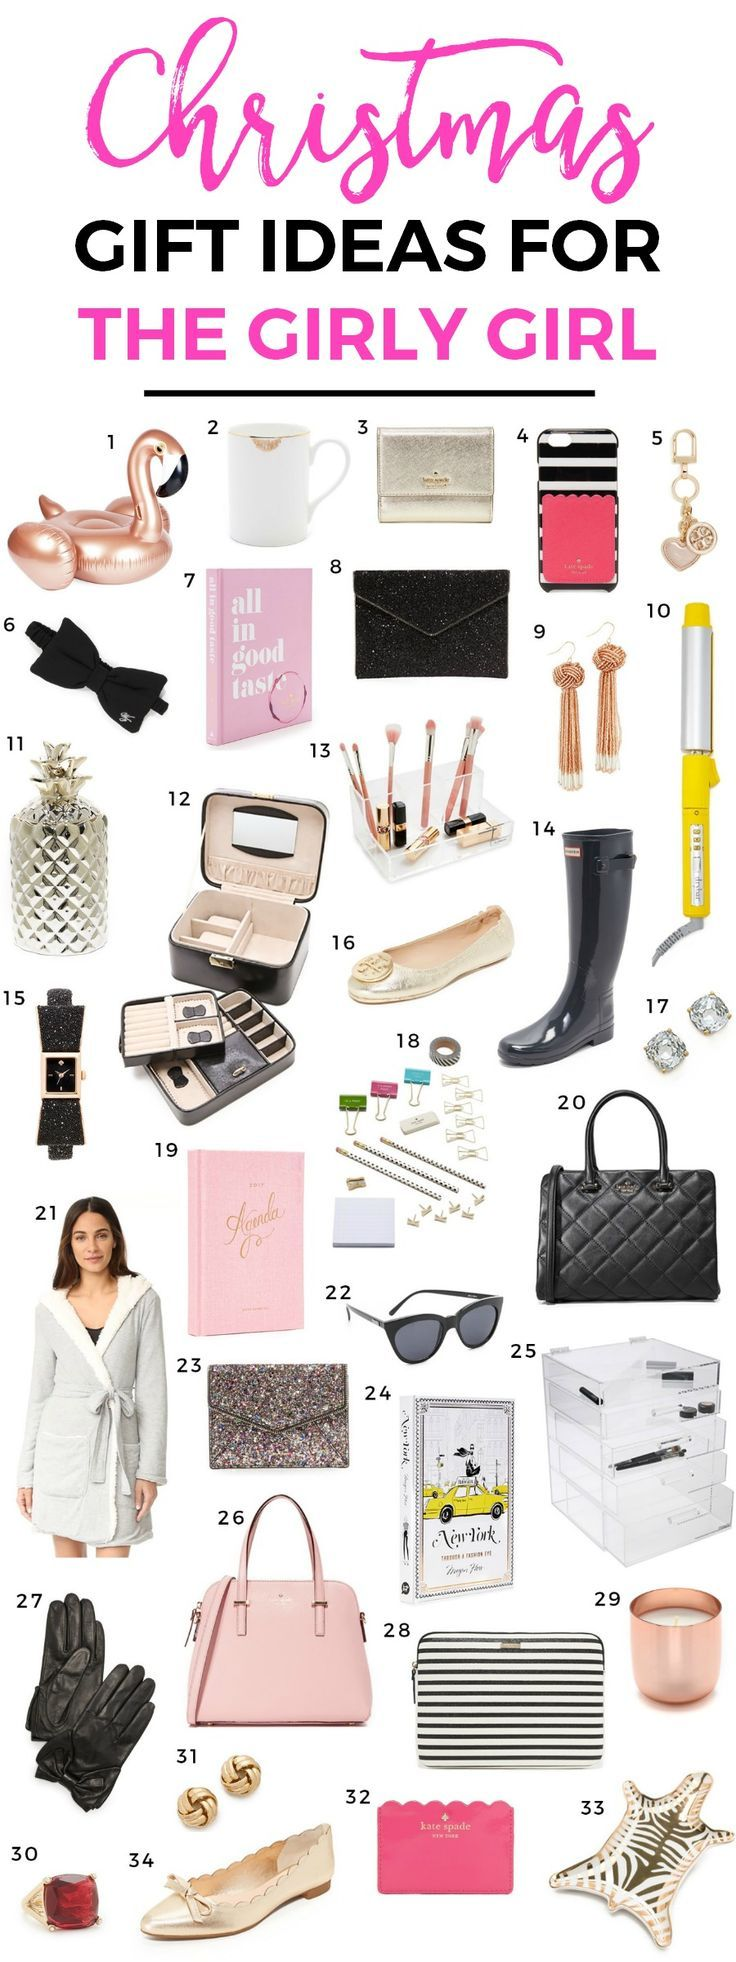 The ultimate list of Christmas gift ideas for the girly girl in your life! This fun Christmas gift guide for women is filled with classy and feminine gifts in every price range + learn about the Black Friday and Cyber Monday sale at Shopbop! @shopbop